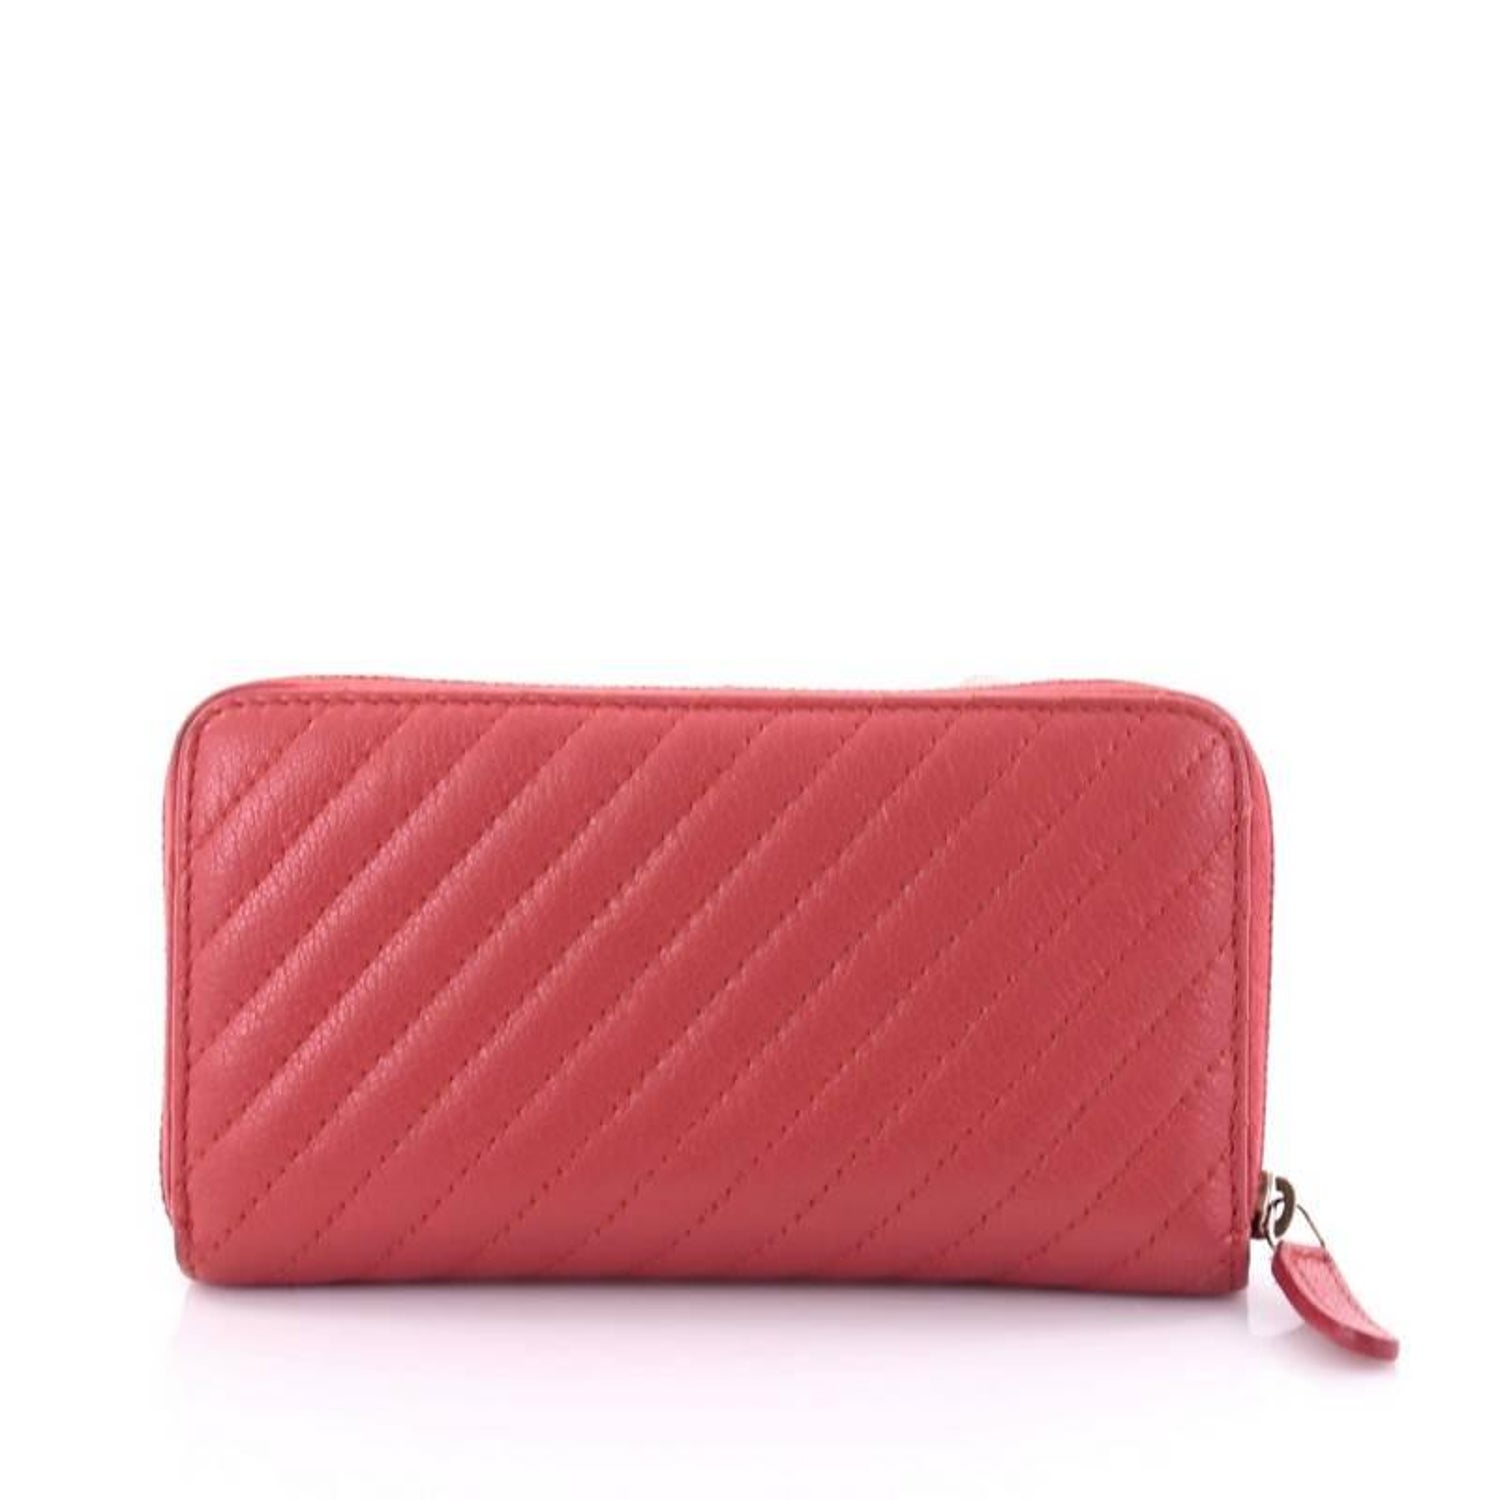 45bdb4af8eb4 Chanel Zip Around Wallet Diagonal Quilted Leather Compact at 1stdibs